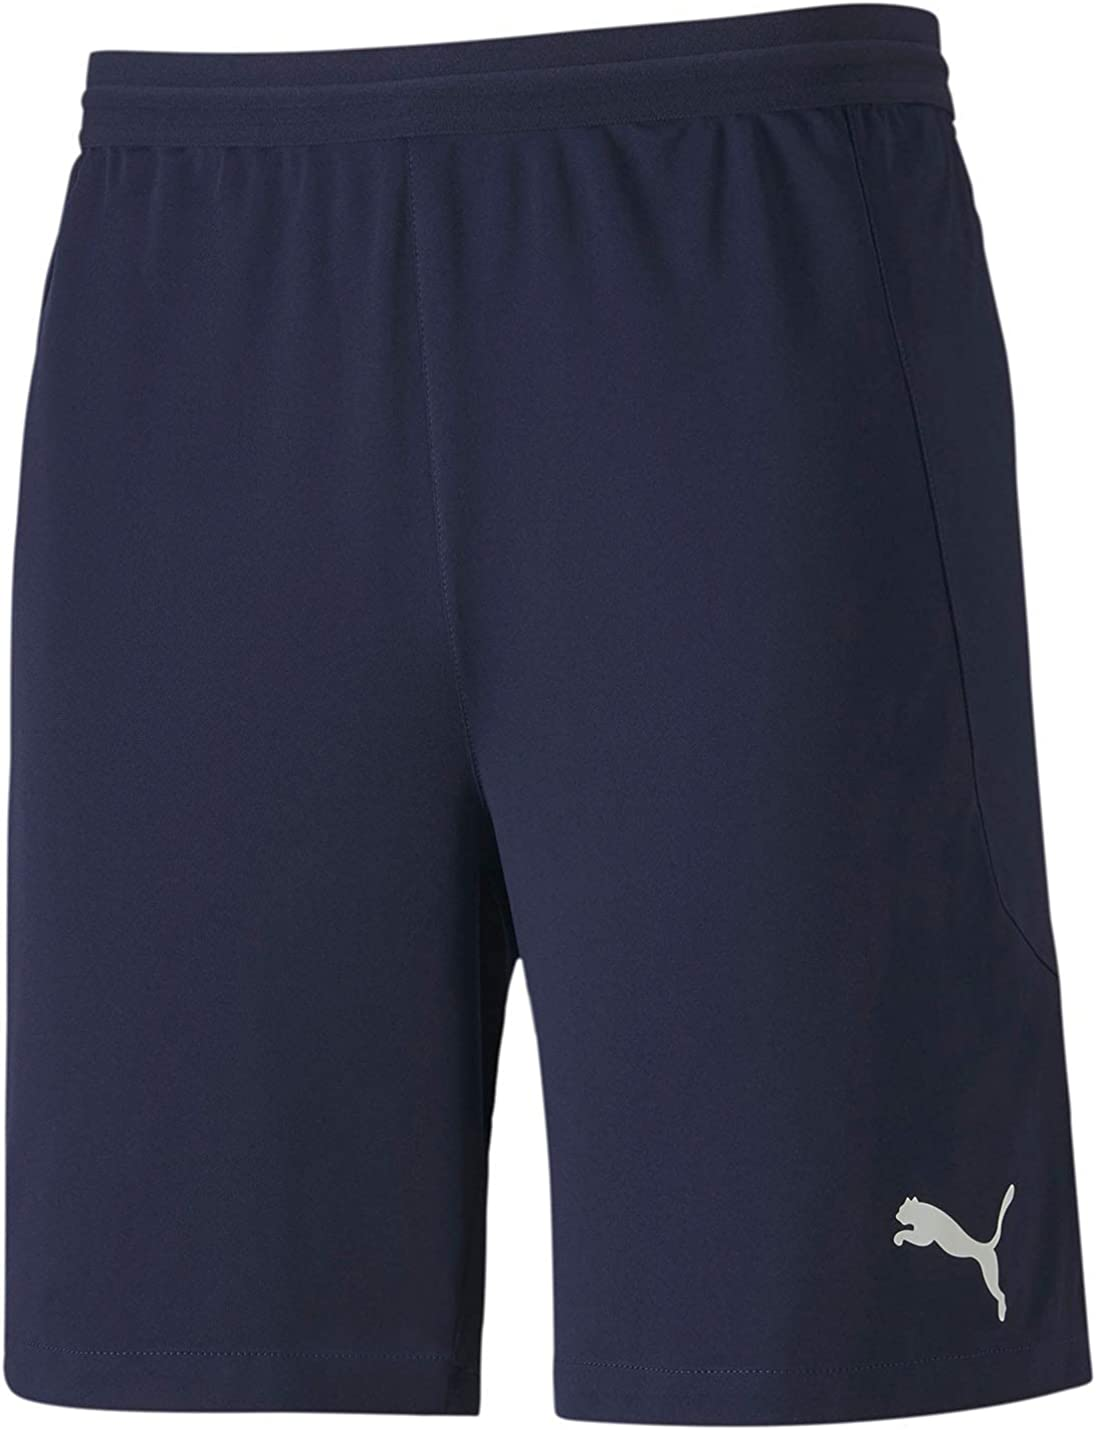 PUMA - Mens Teamfinal Ranking TOP12 Free shipping anywhere in the nation Knit Shorts 21